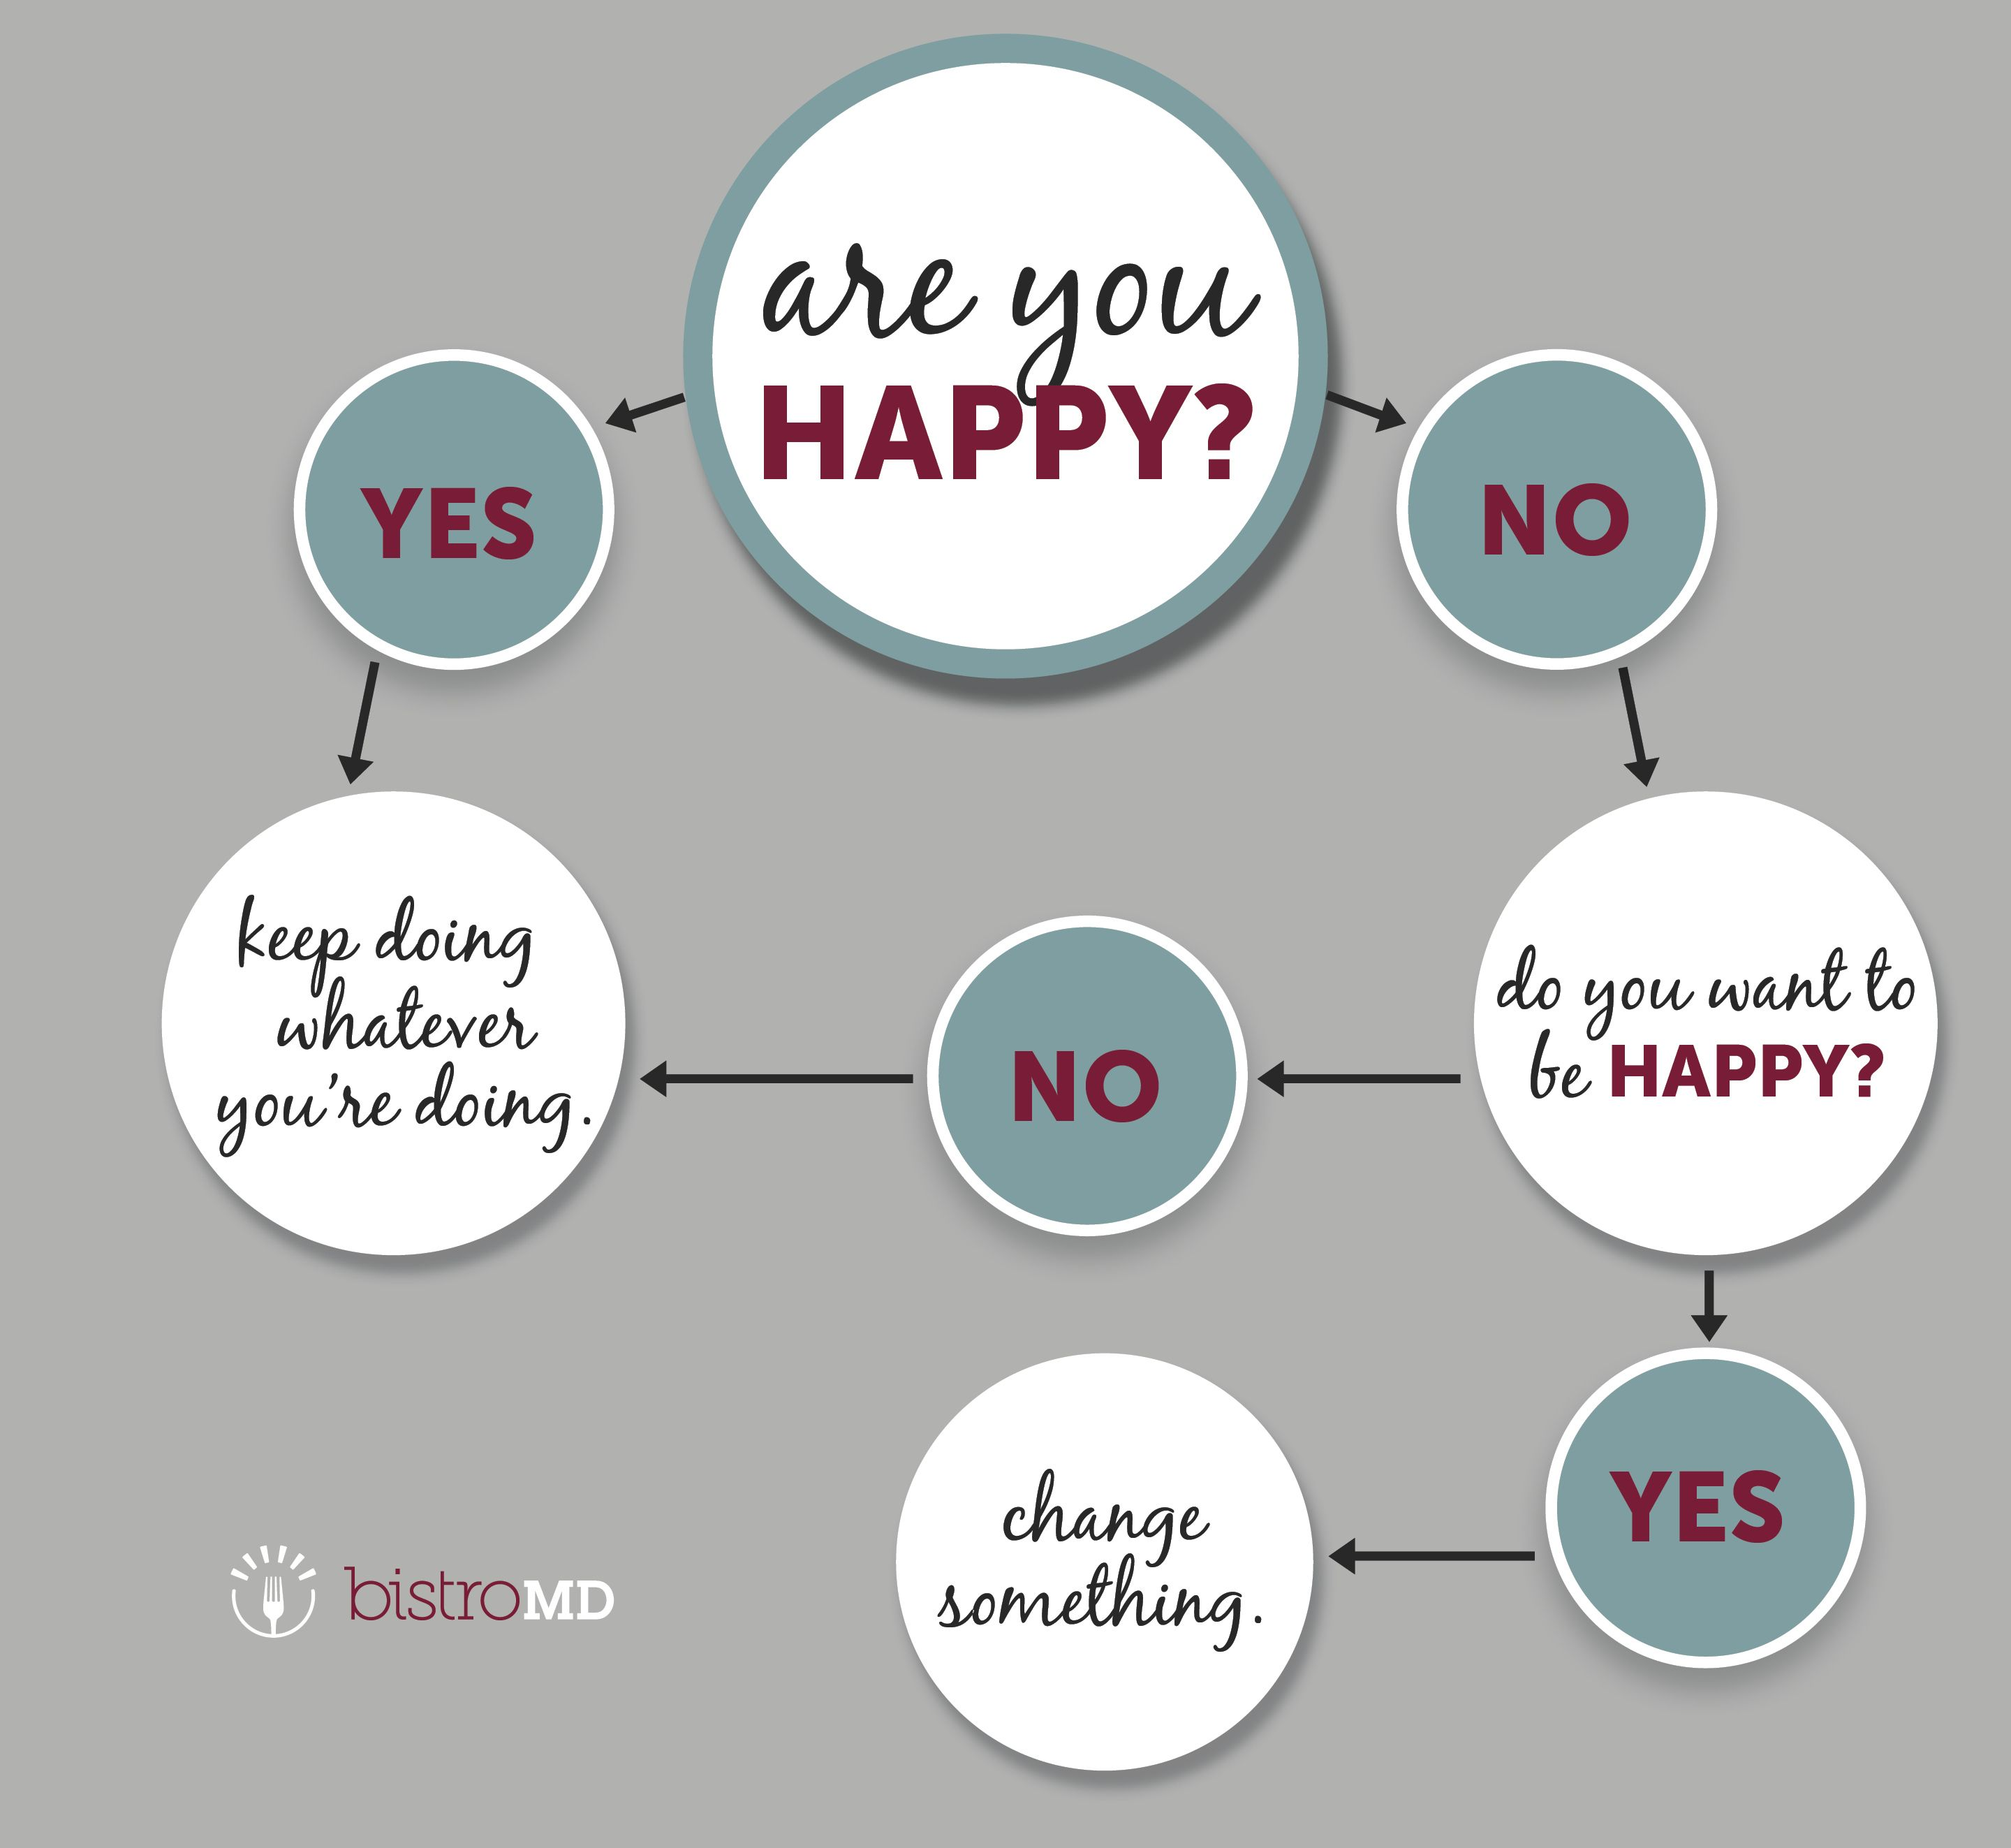 Are you happy? It's a simple question with HUGE implications for